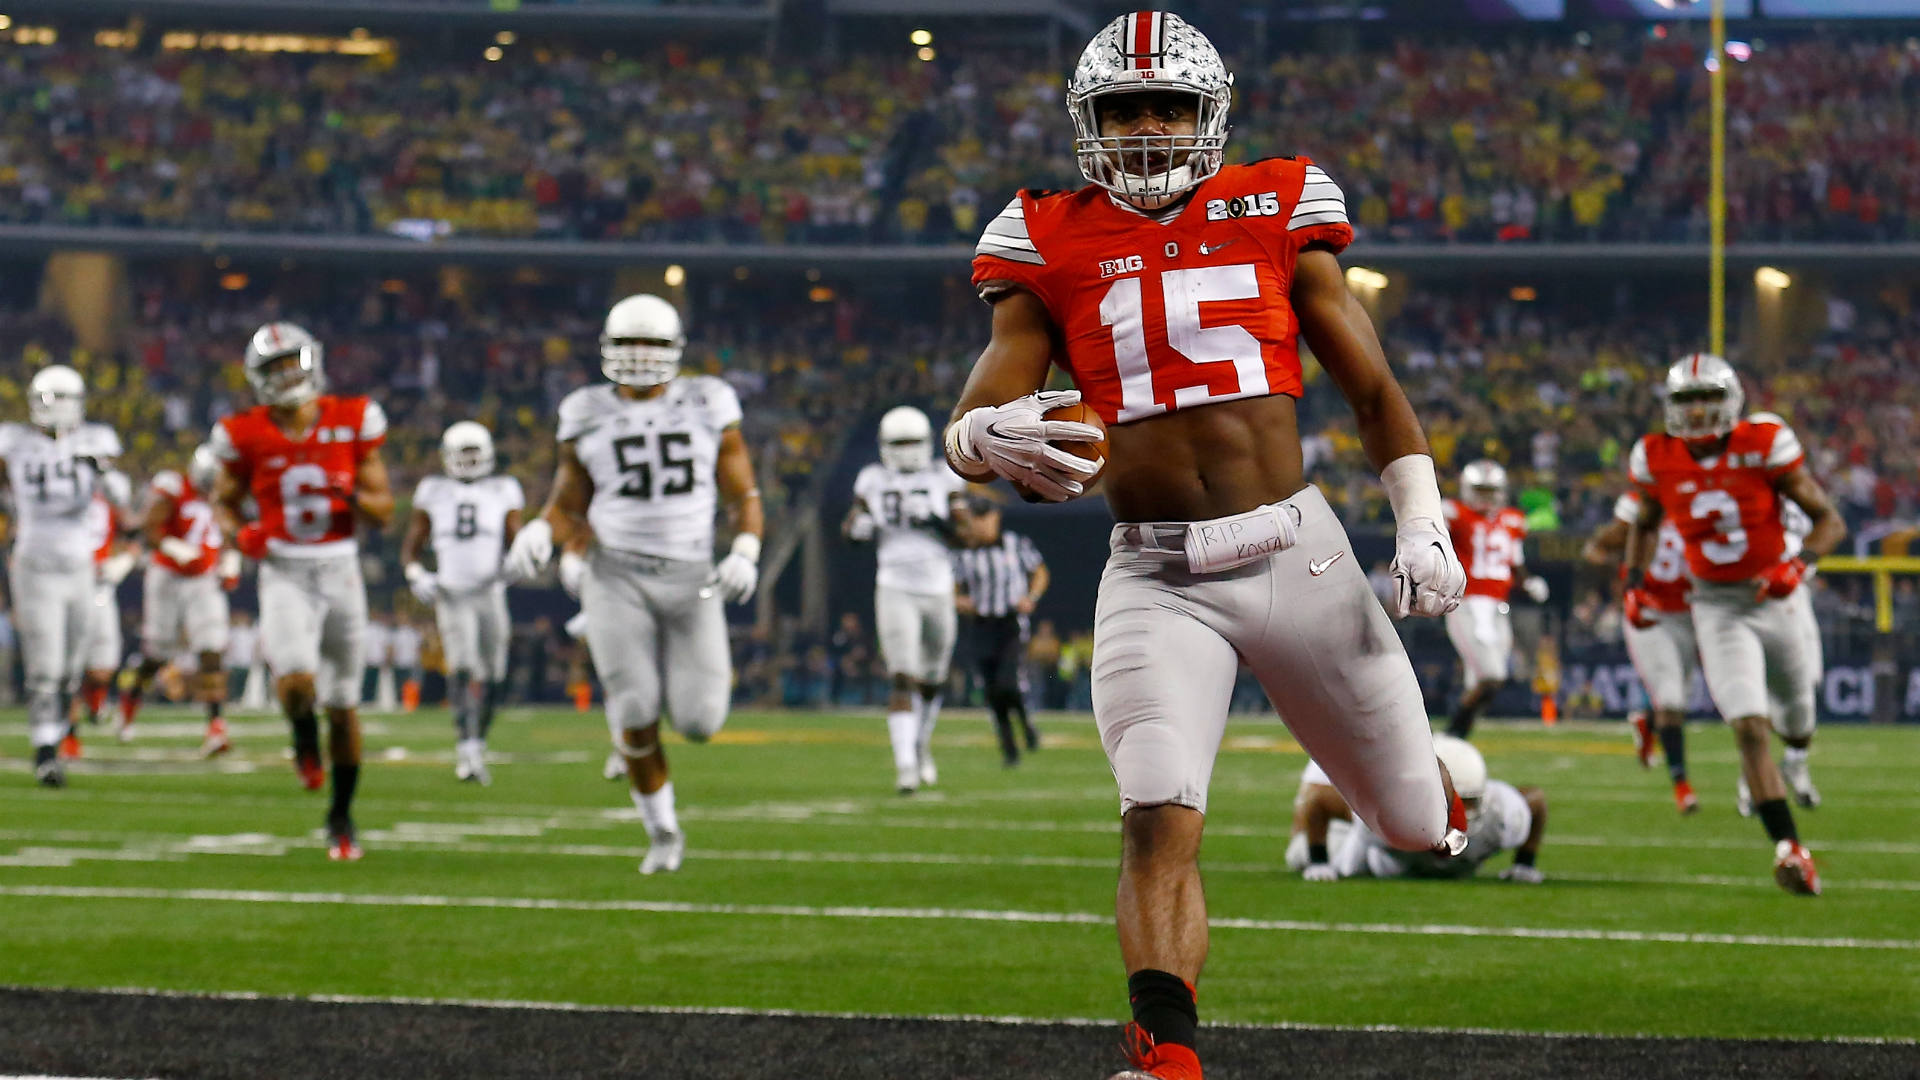 Vegas book offering 10-1 odds on an Ohio State undefeated season